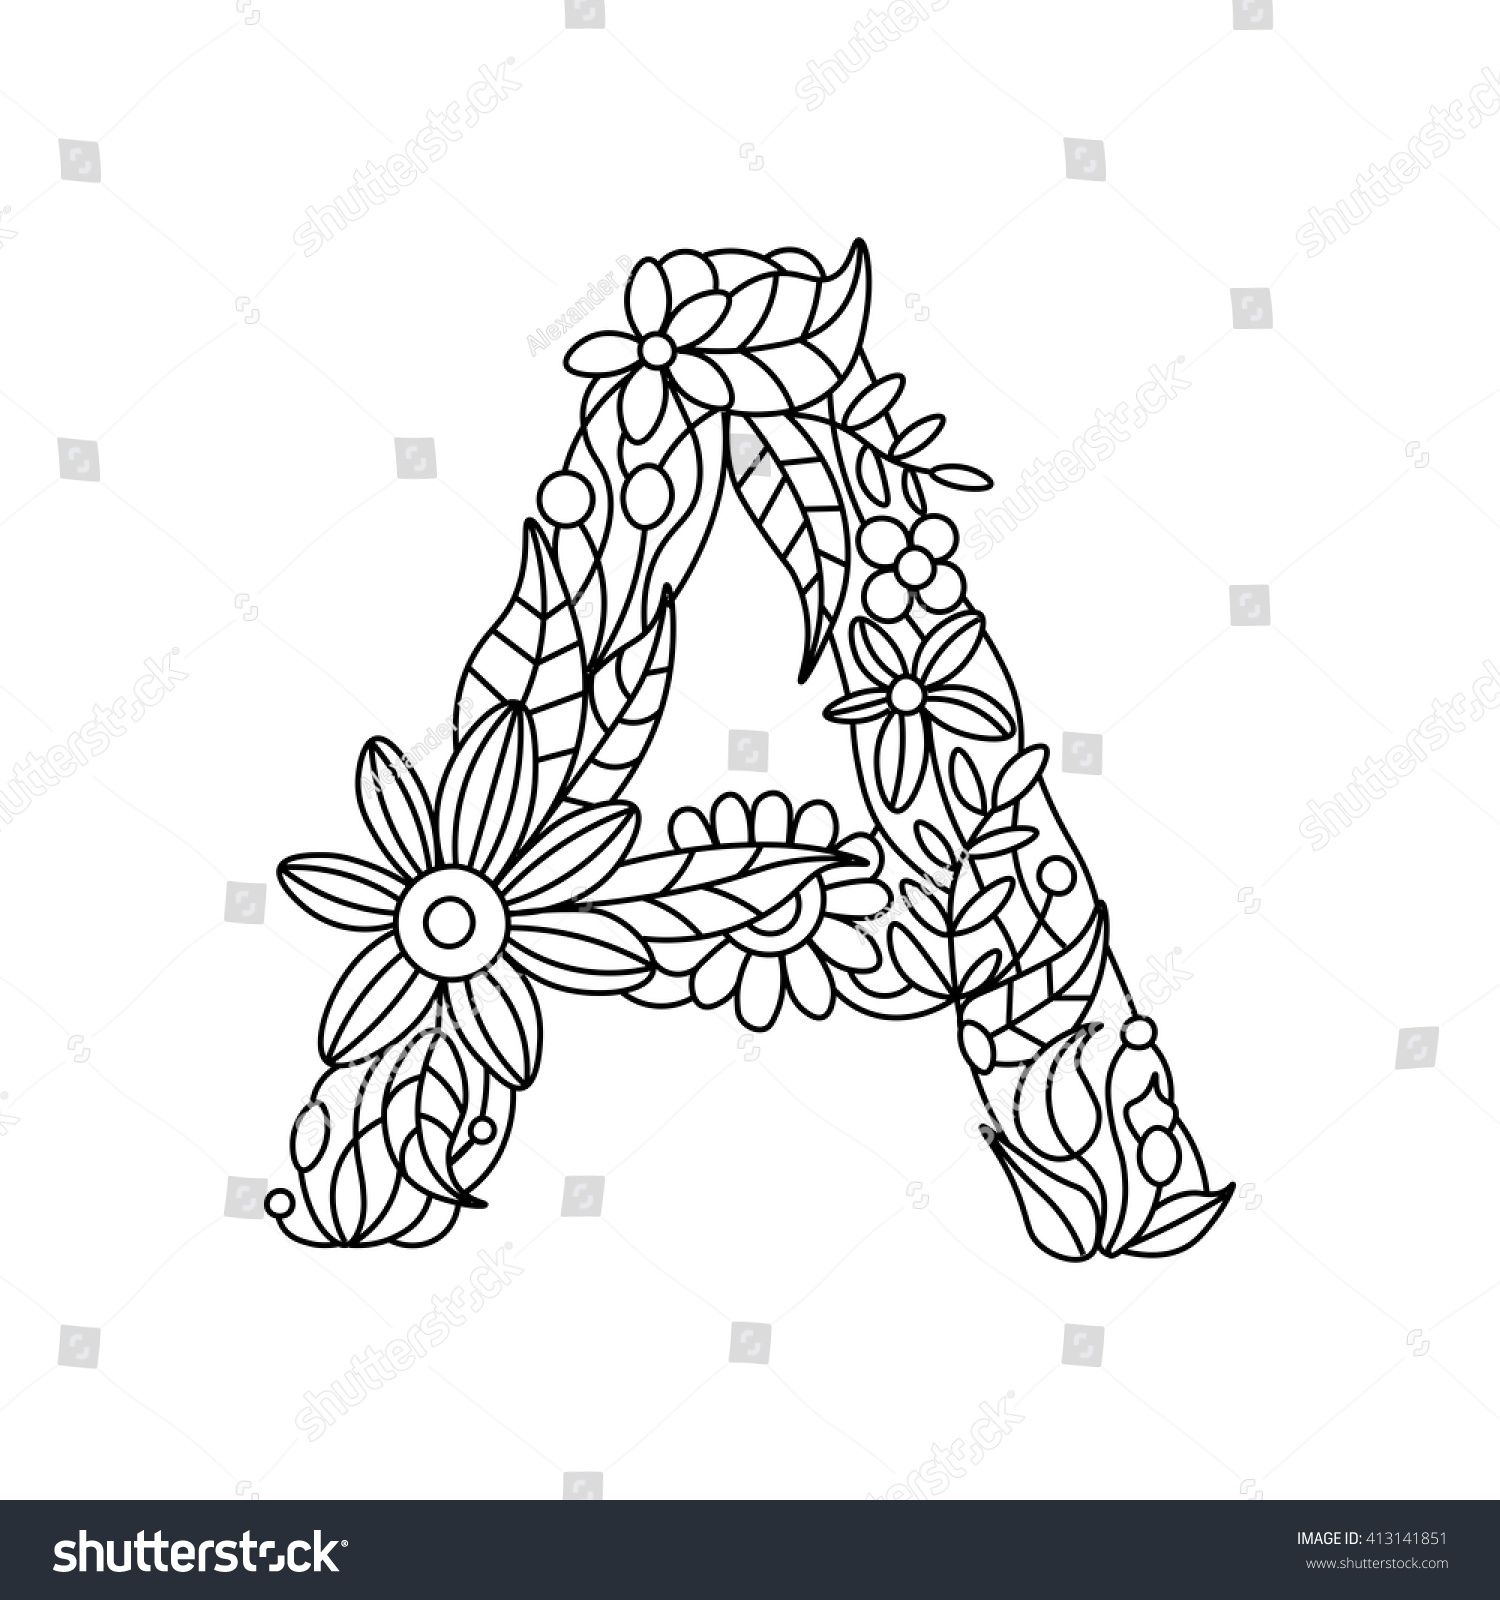 Floral Alphabet Letter Coloring Book Adults Stock Vector 413141851 ...